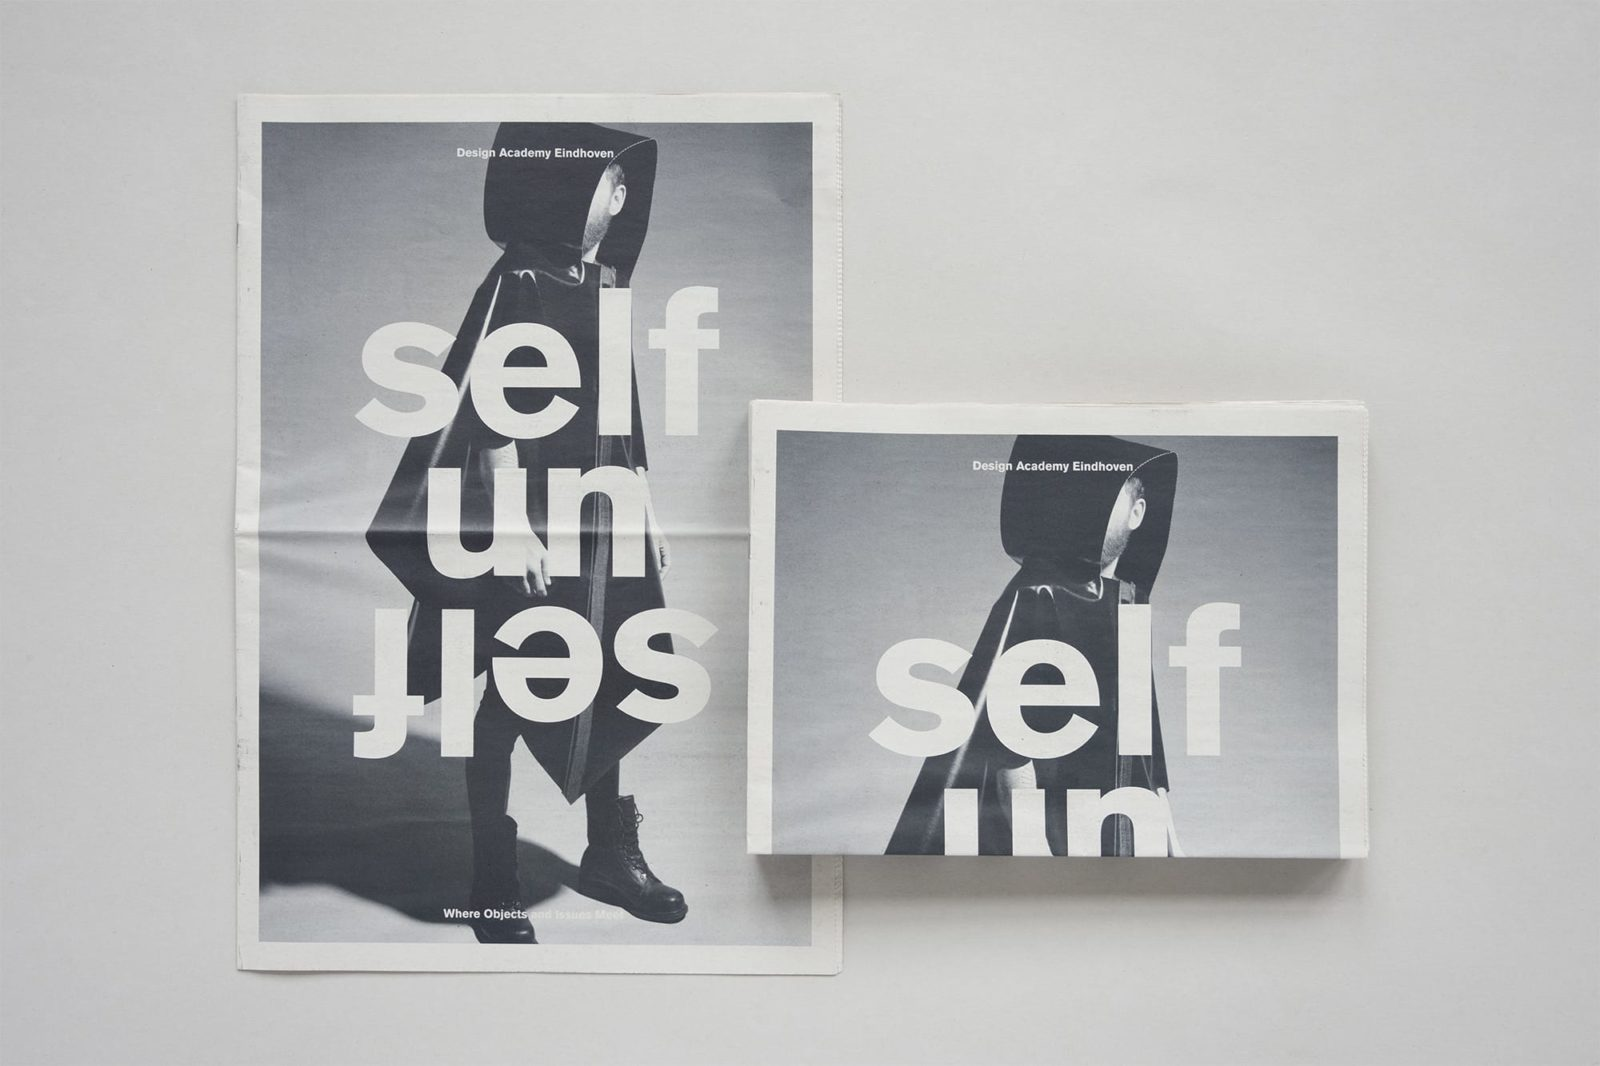 Haller Brun Design Academy Eindhoven Salone del Mobile Milano 2013 Self Unself visual identity newspaper banner